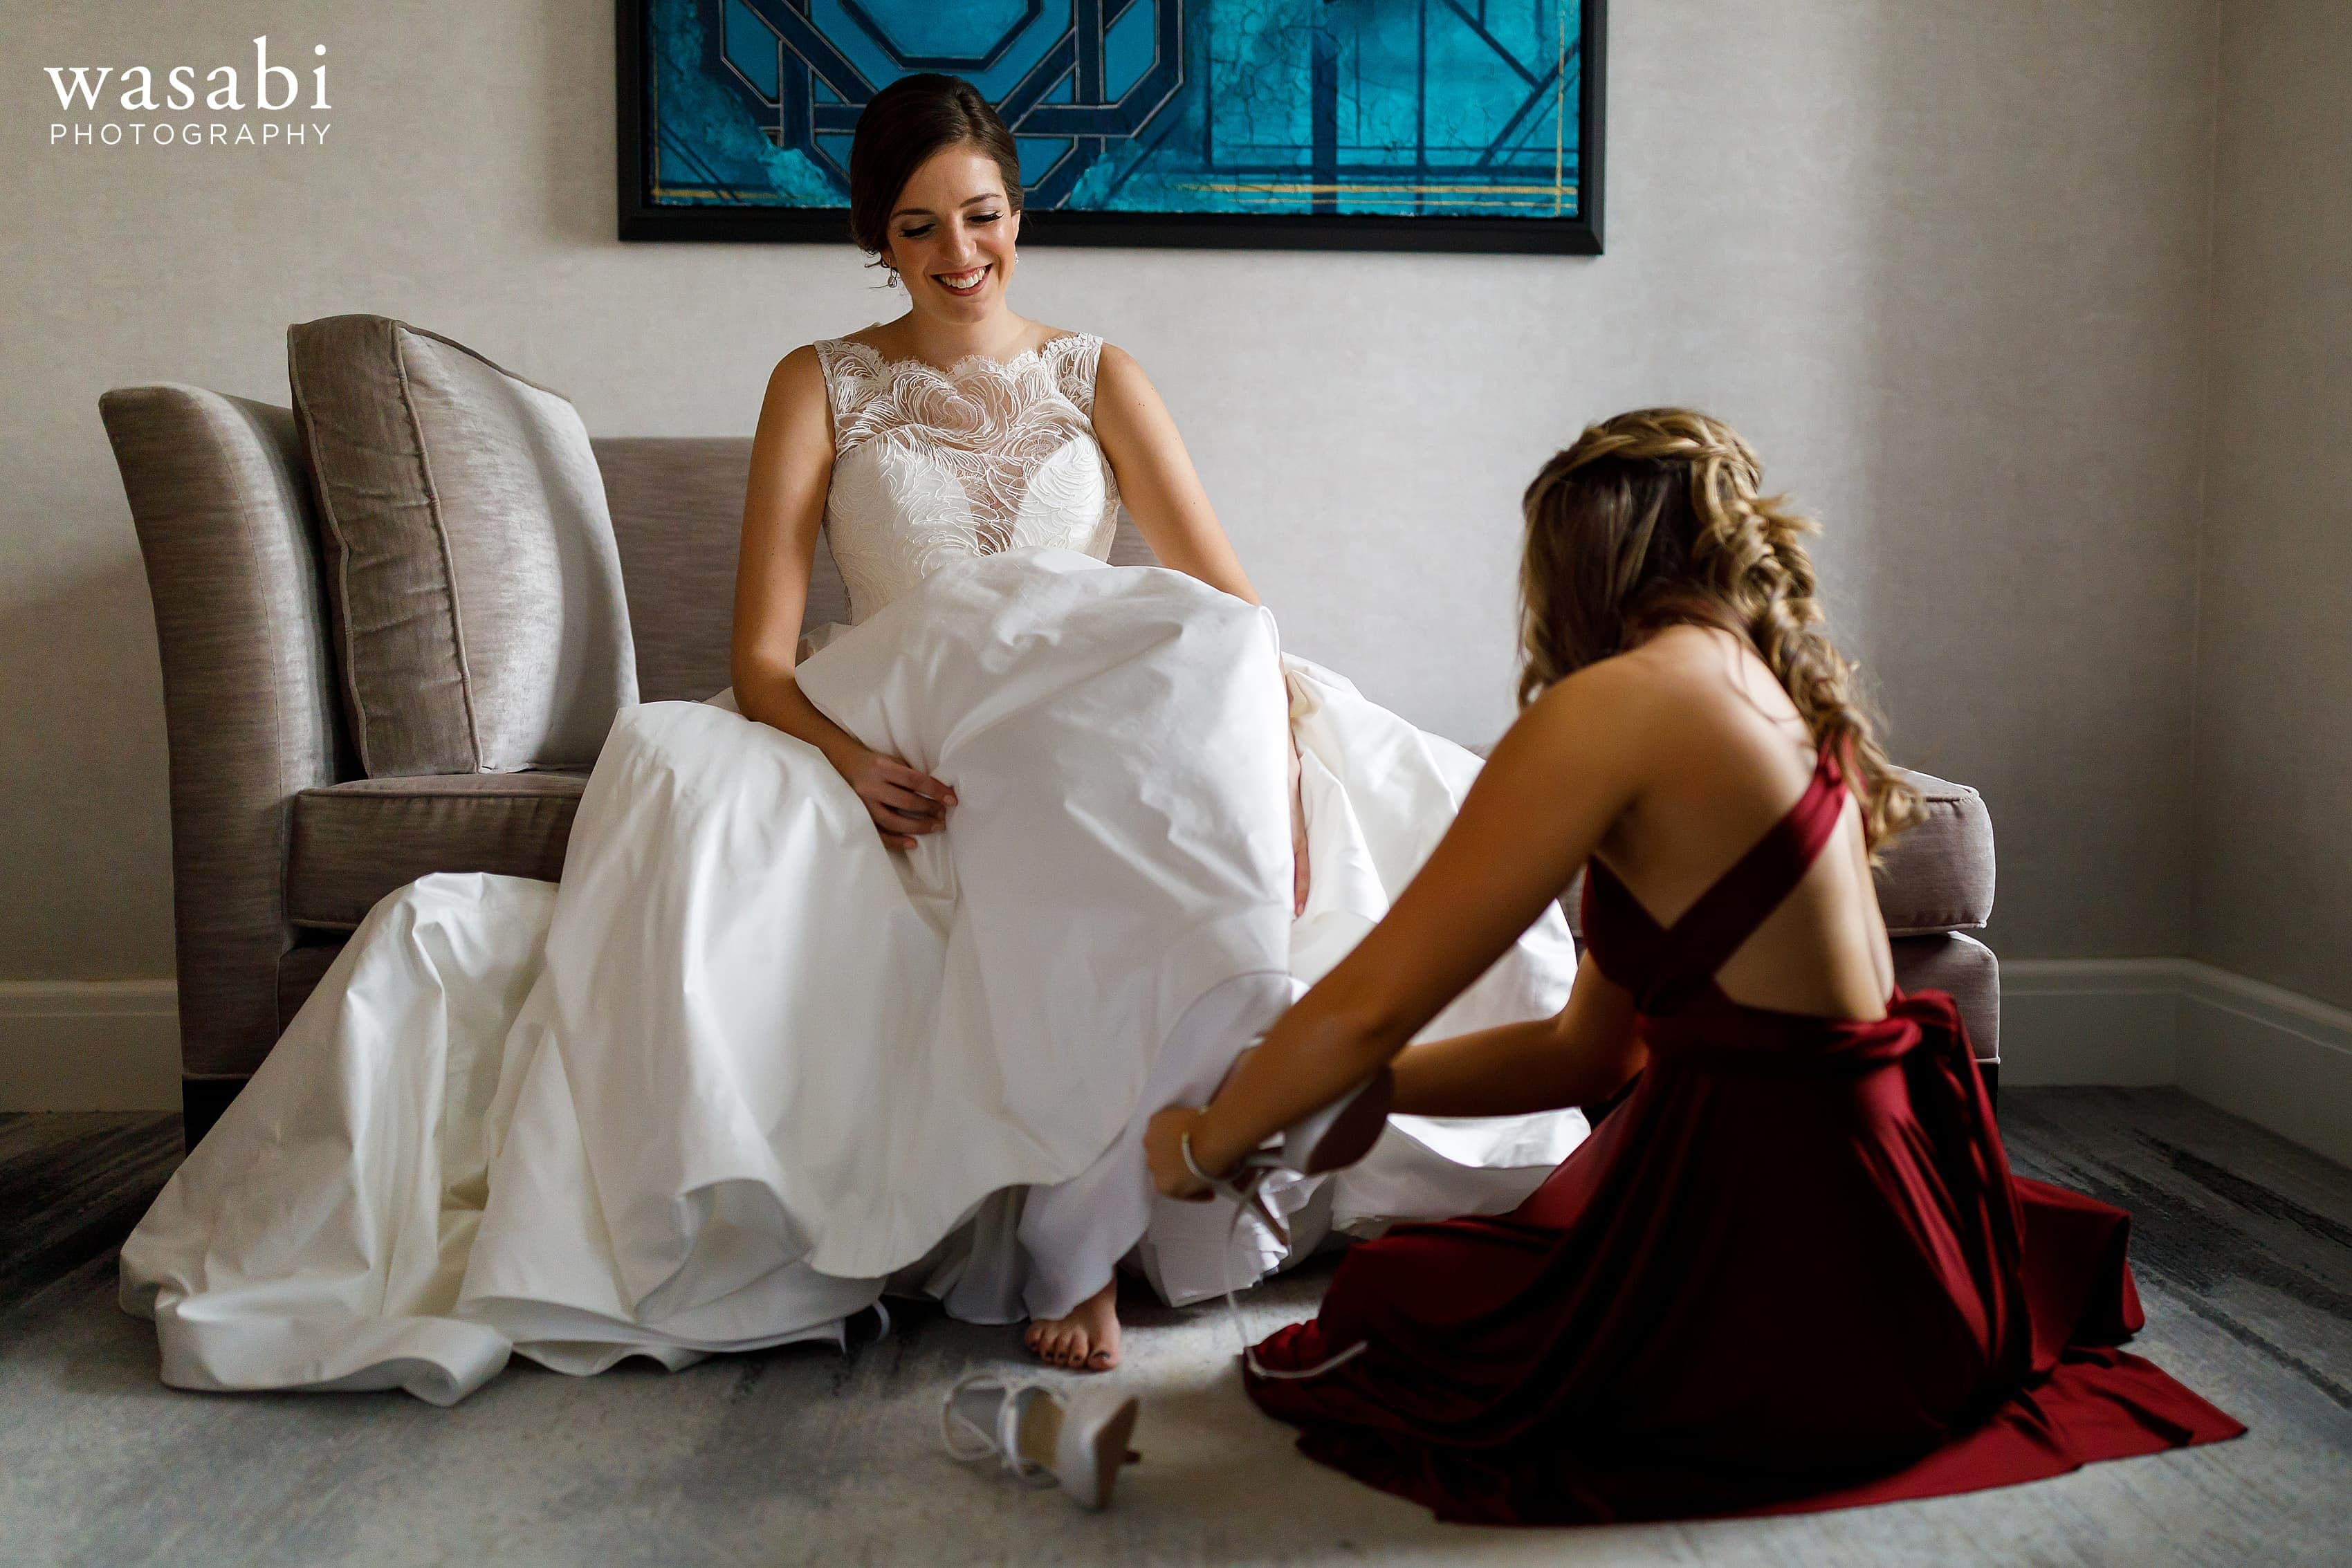 Sister helps bride with shoes while getting ready for wedding in the presidential suite at InterContinental Chicago Magnificent Mile Hotel